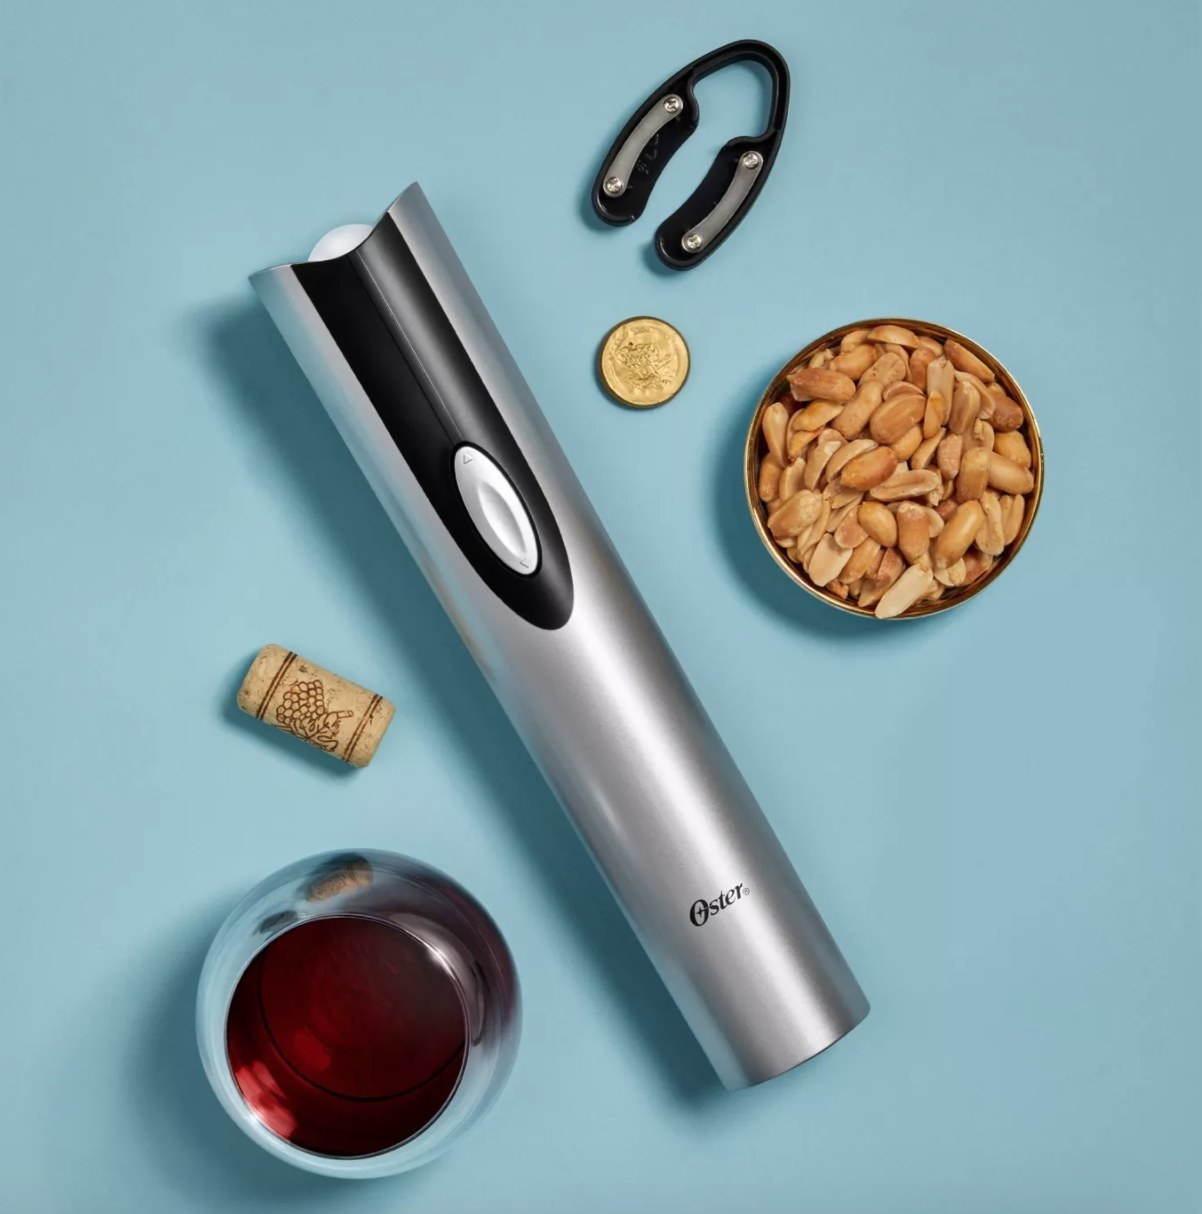 Silver electric wine opener